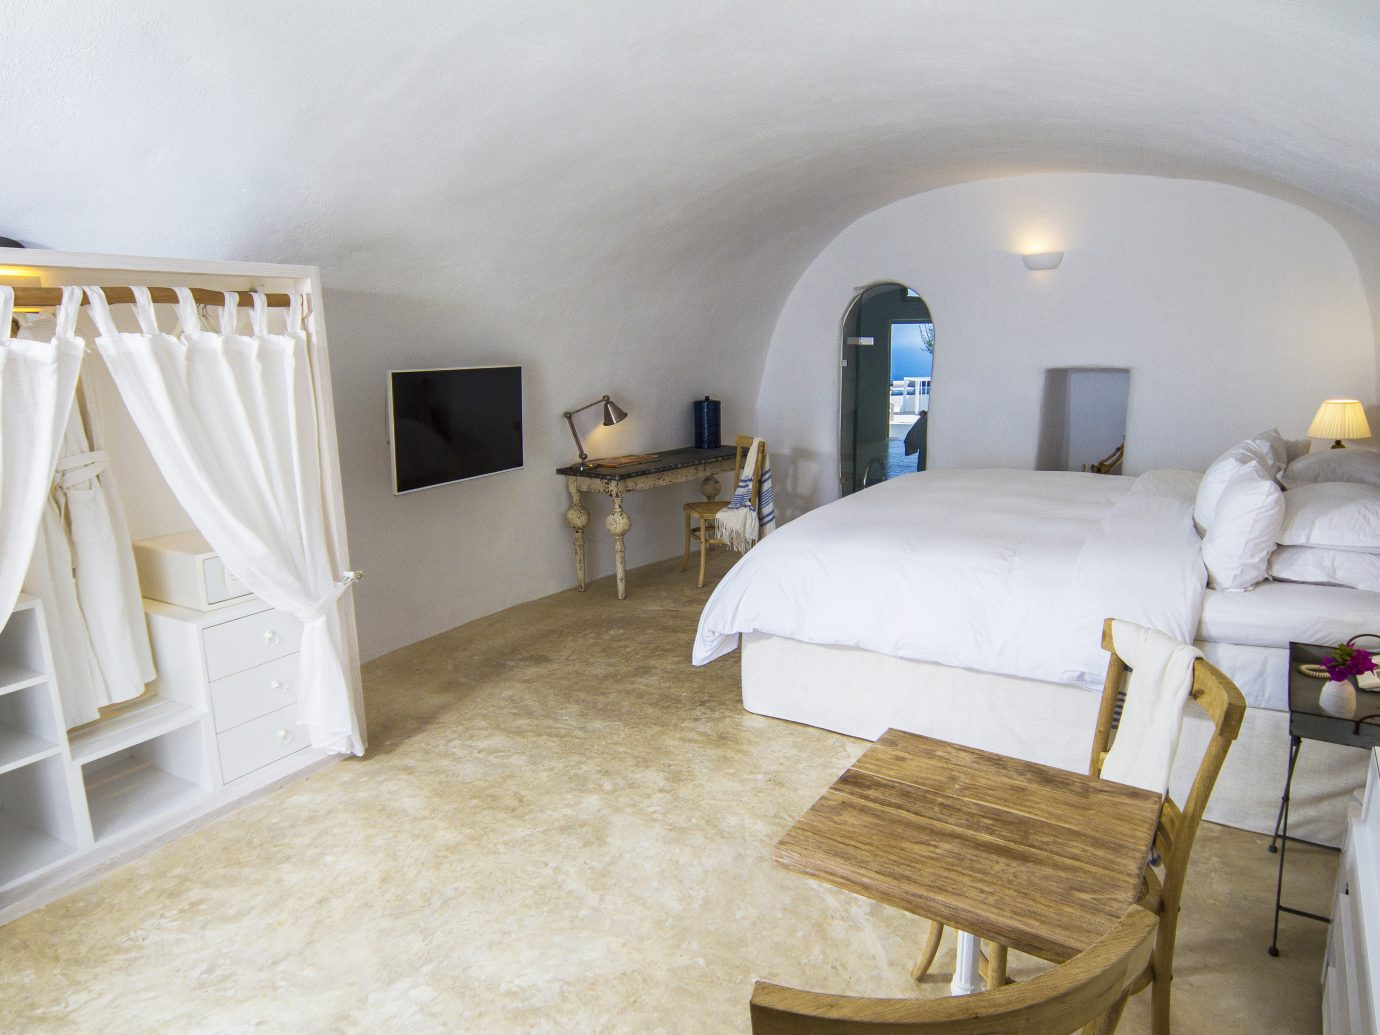 Greece Hotels Santorini indoor wall floor room property Bedroom Suite furniture bed real estate home interior design estate bed frame ceiling product